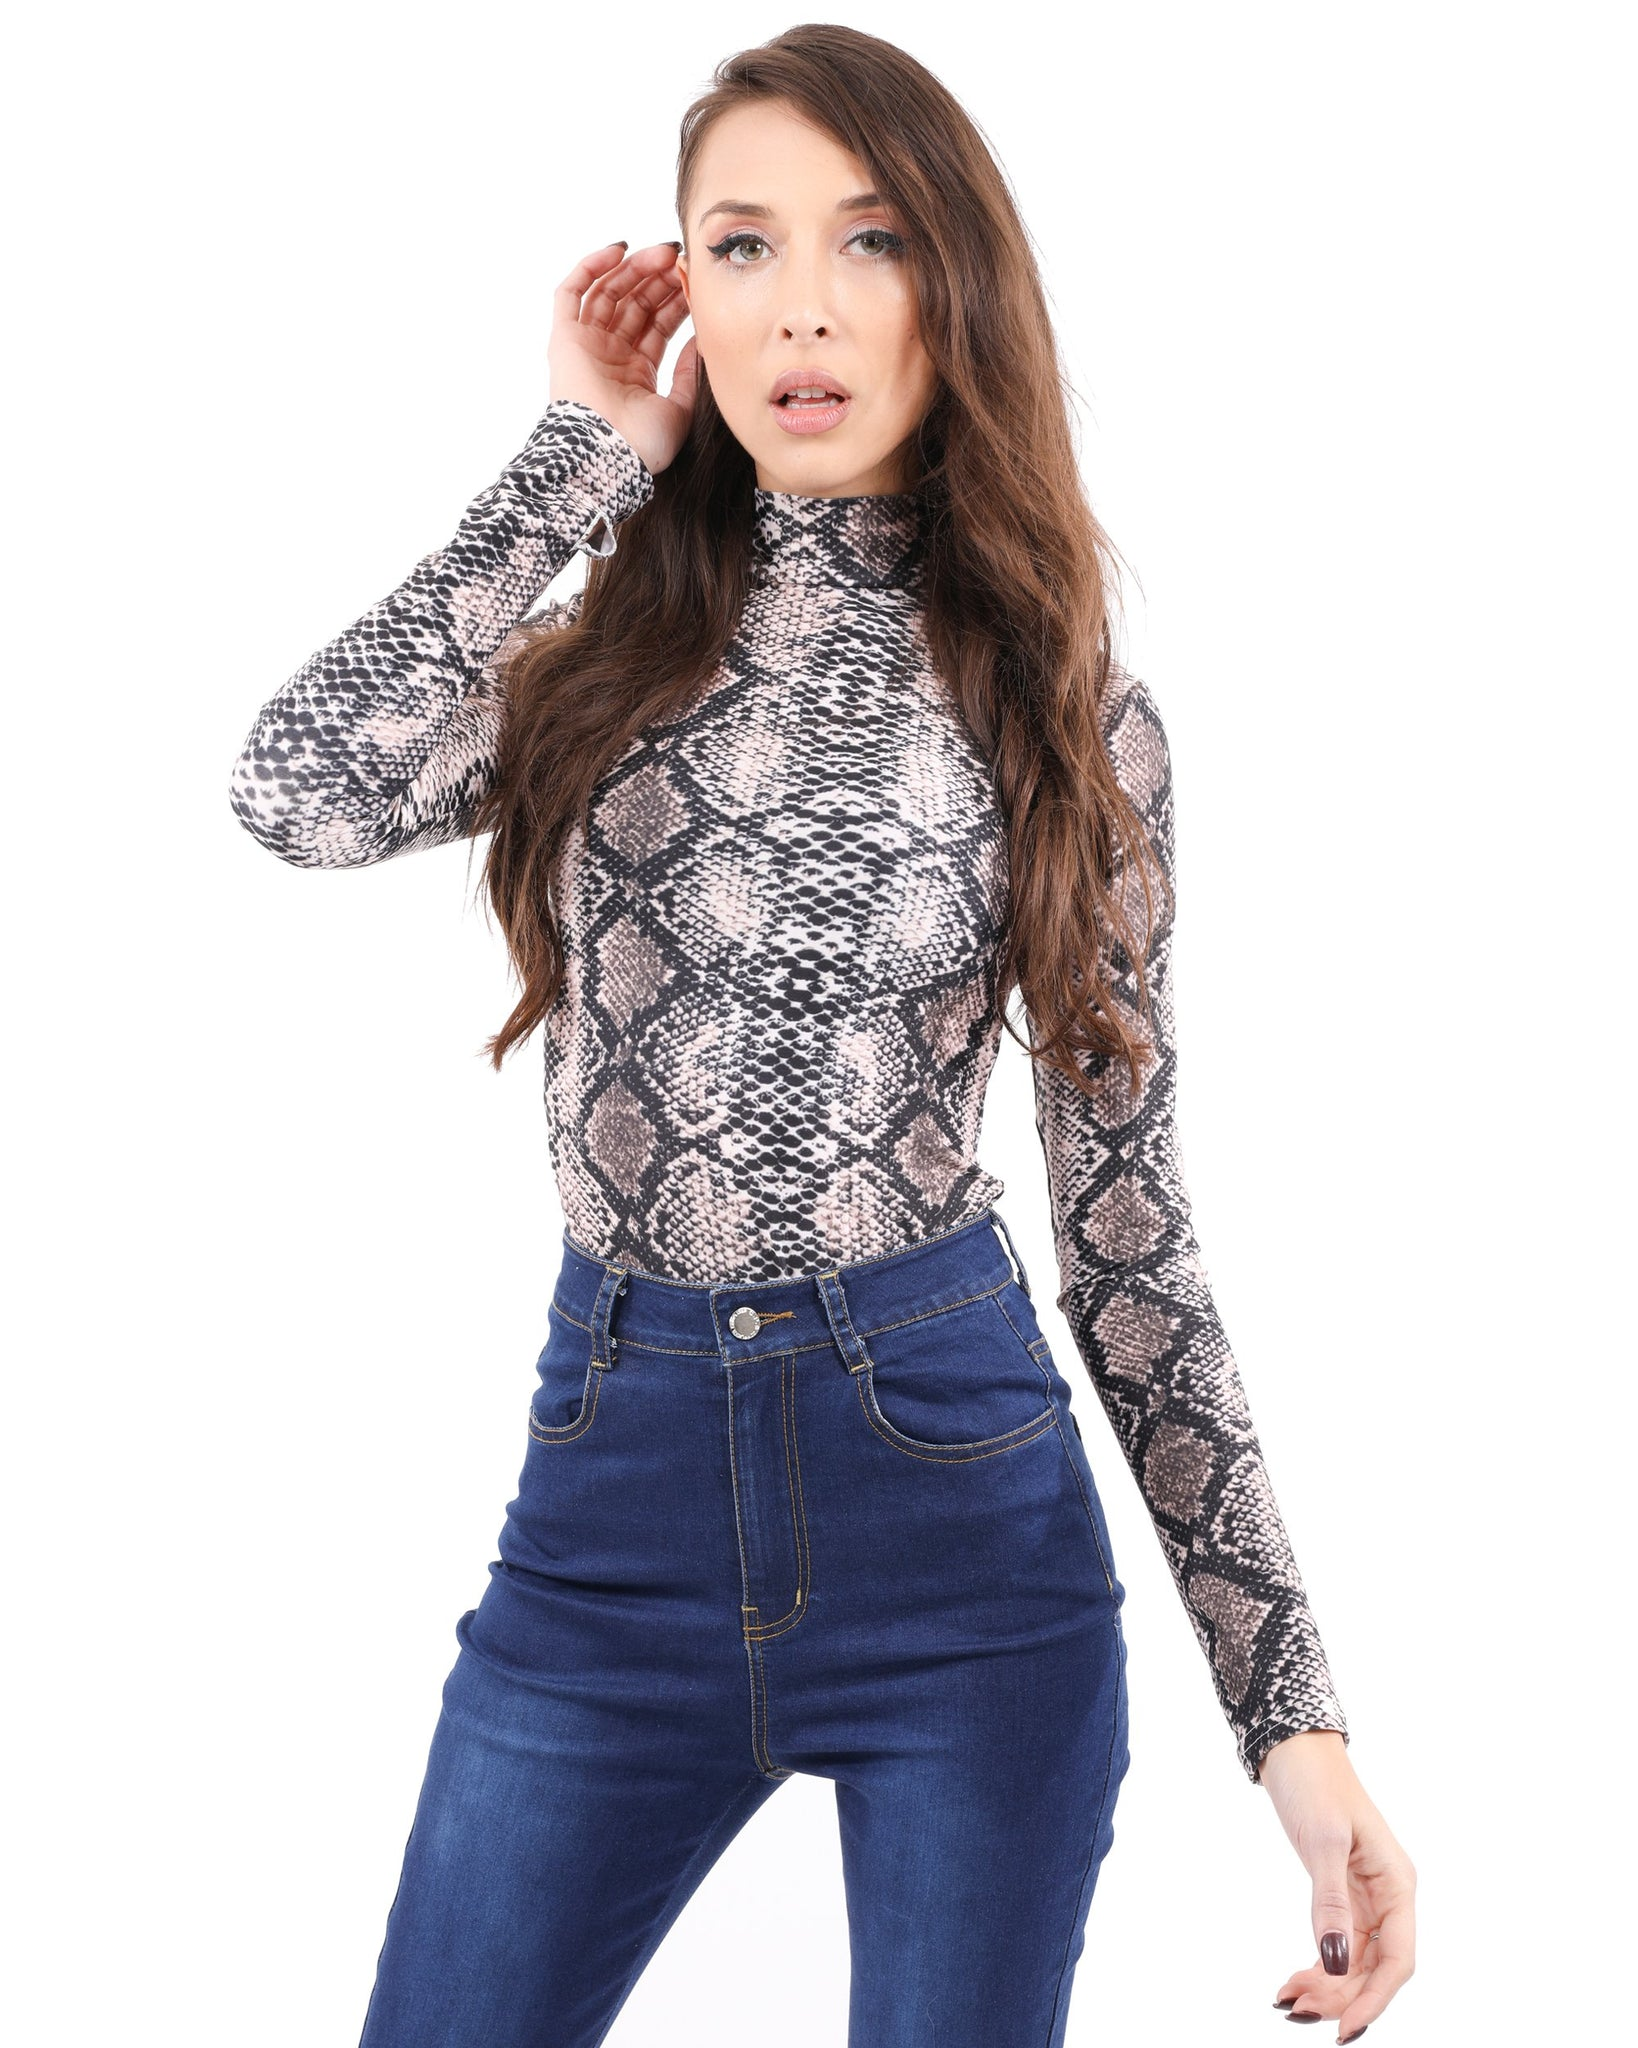 RSP Fashion - Leslie Animal Print Bodysuit